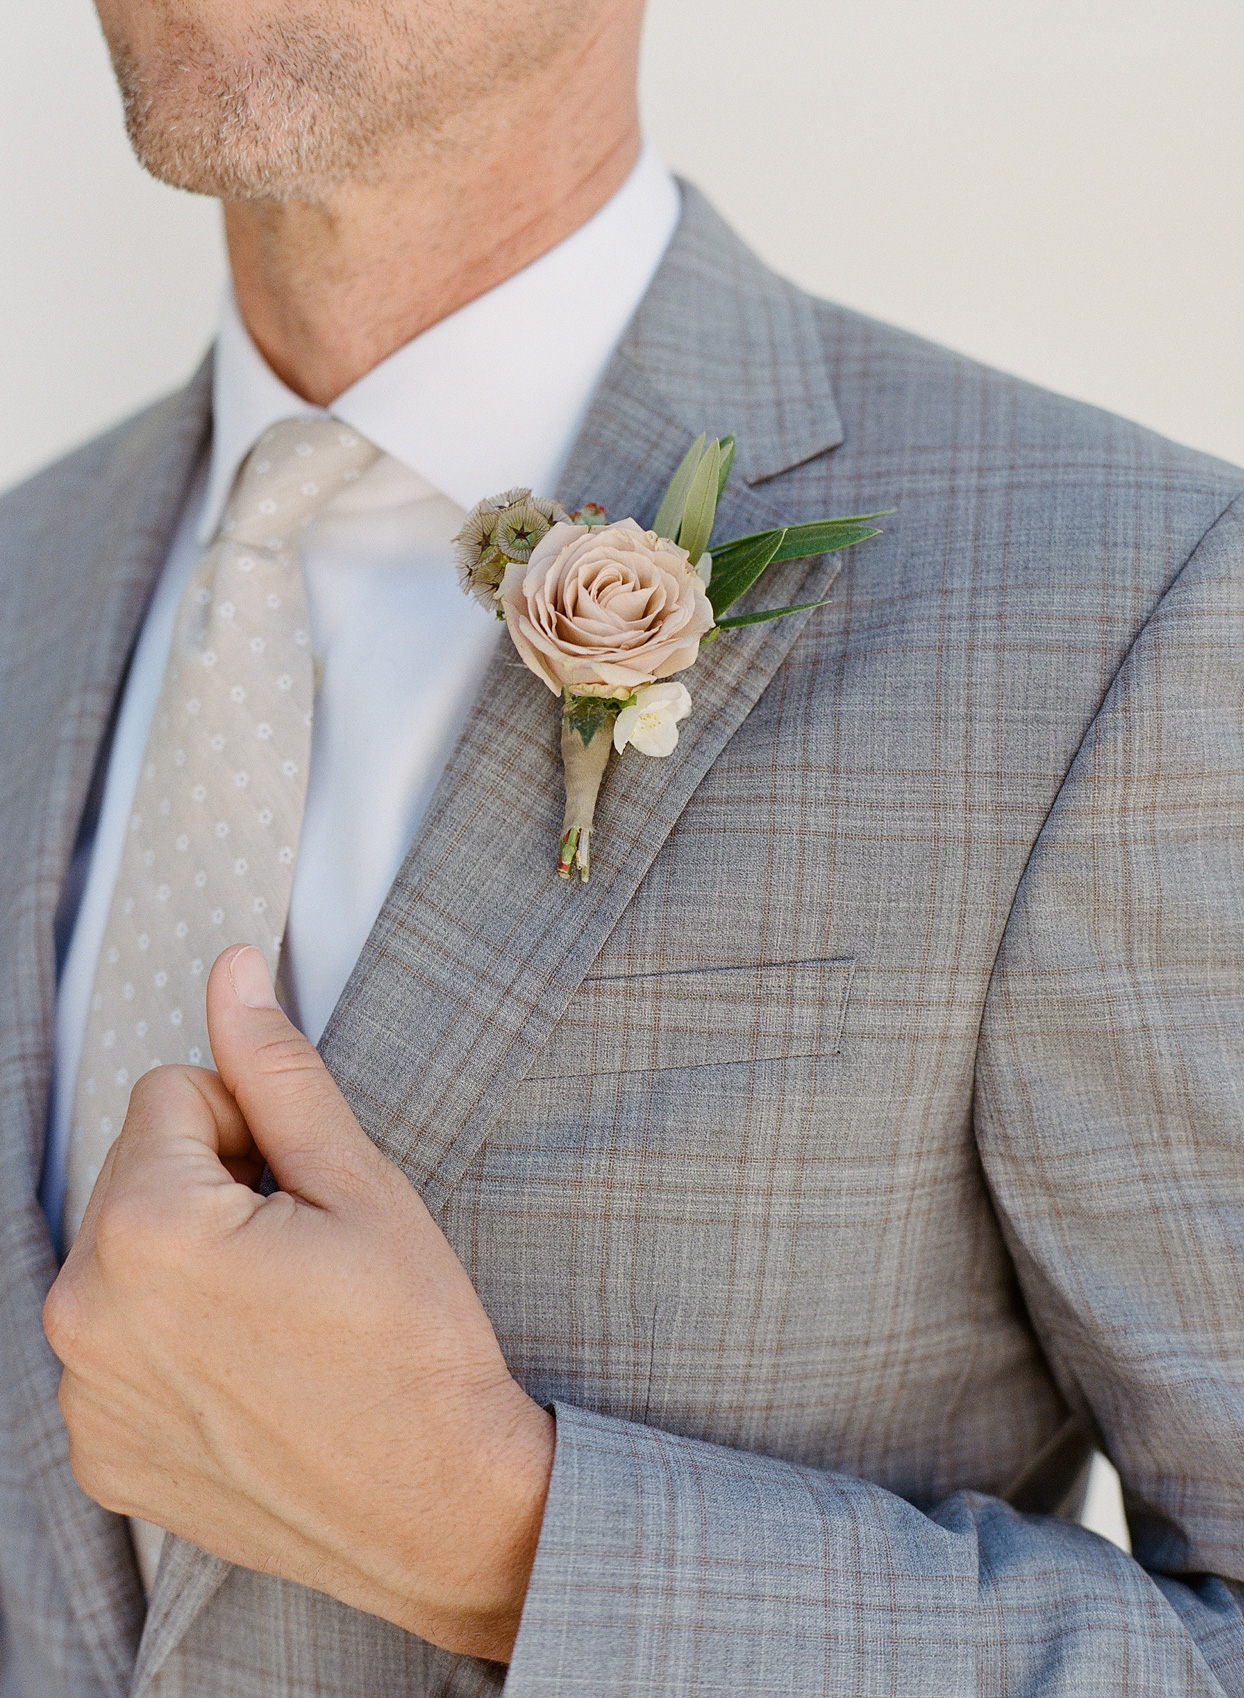 groom wearing pale grey and tan plaid suit